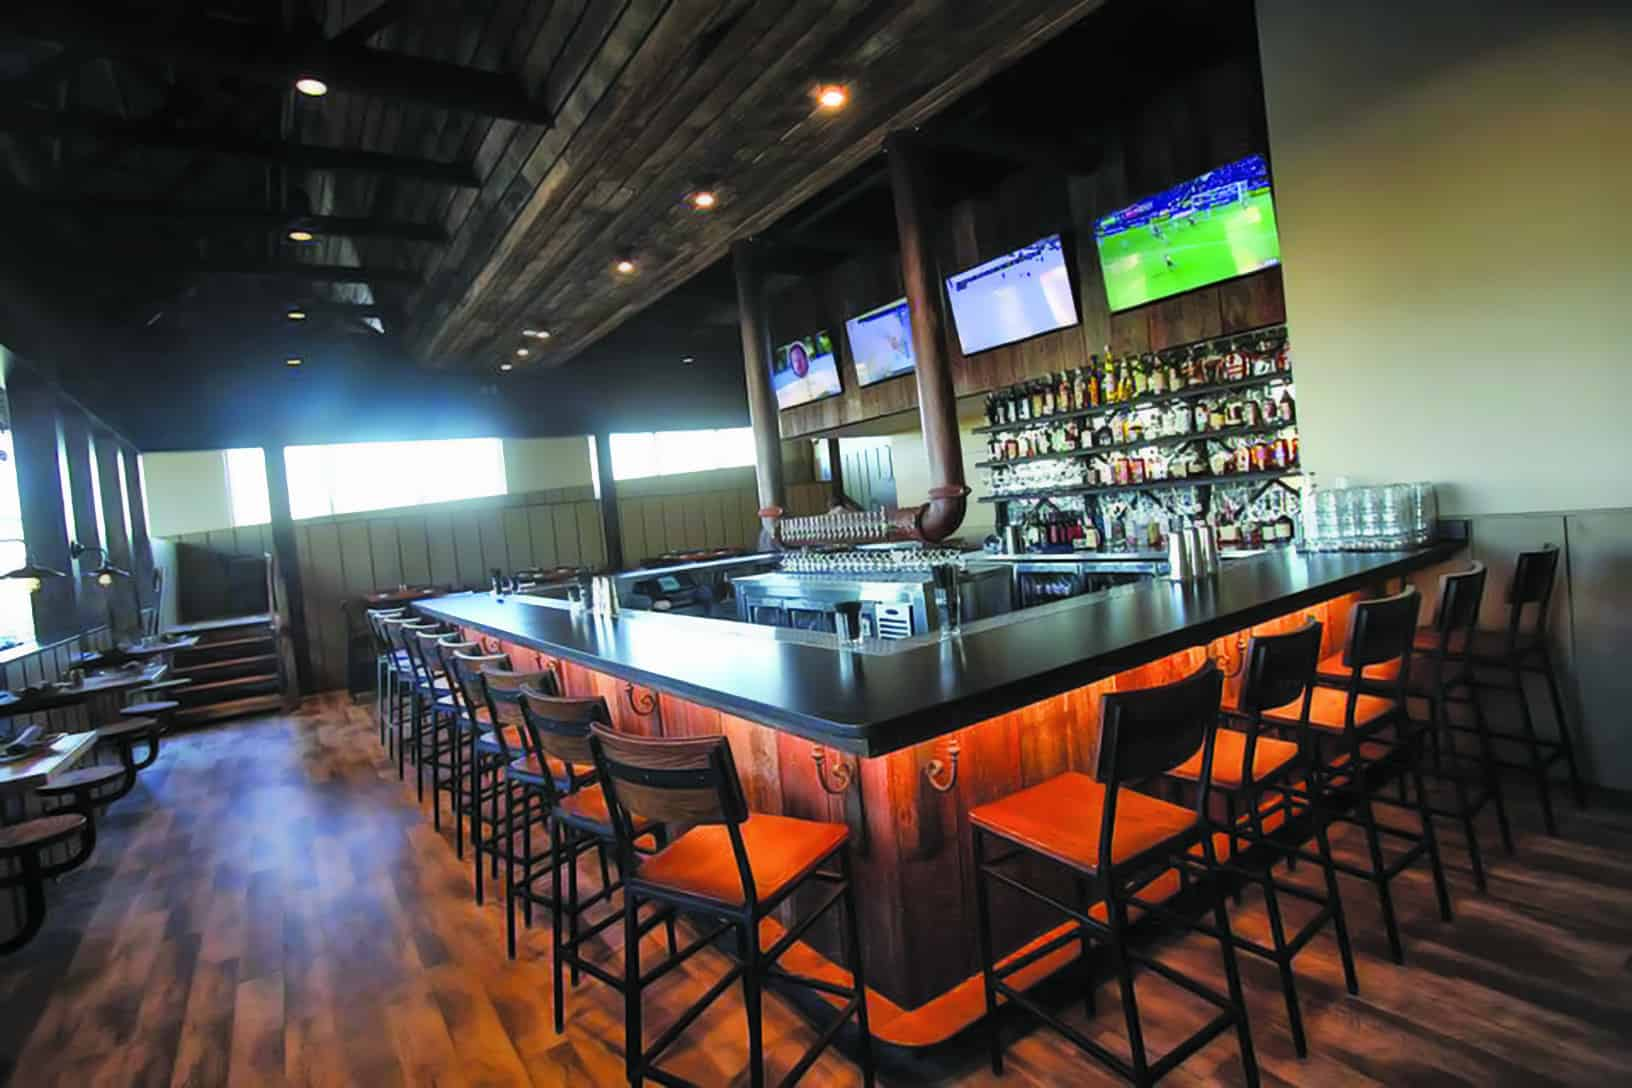 The bar at Food Plenty in Clarksville serves Manor Hill beer on tap.